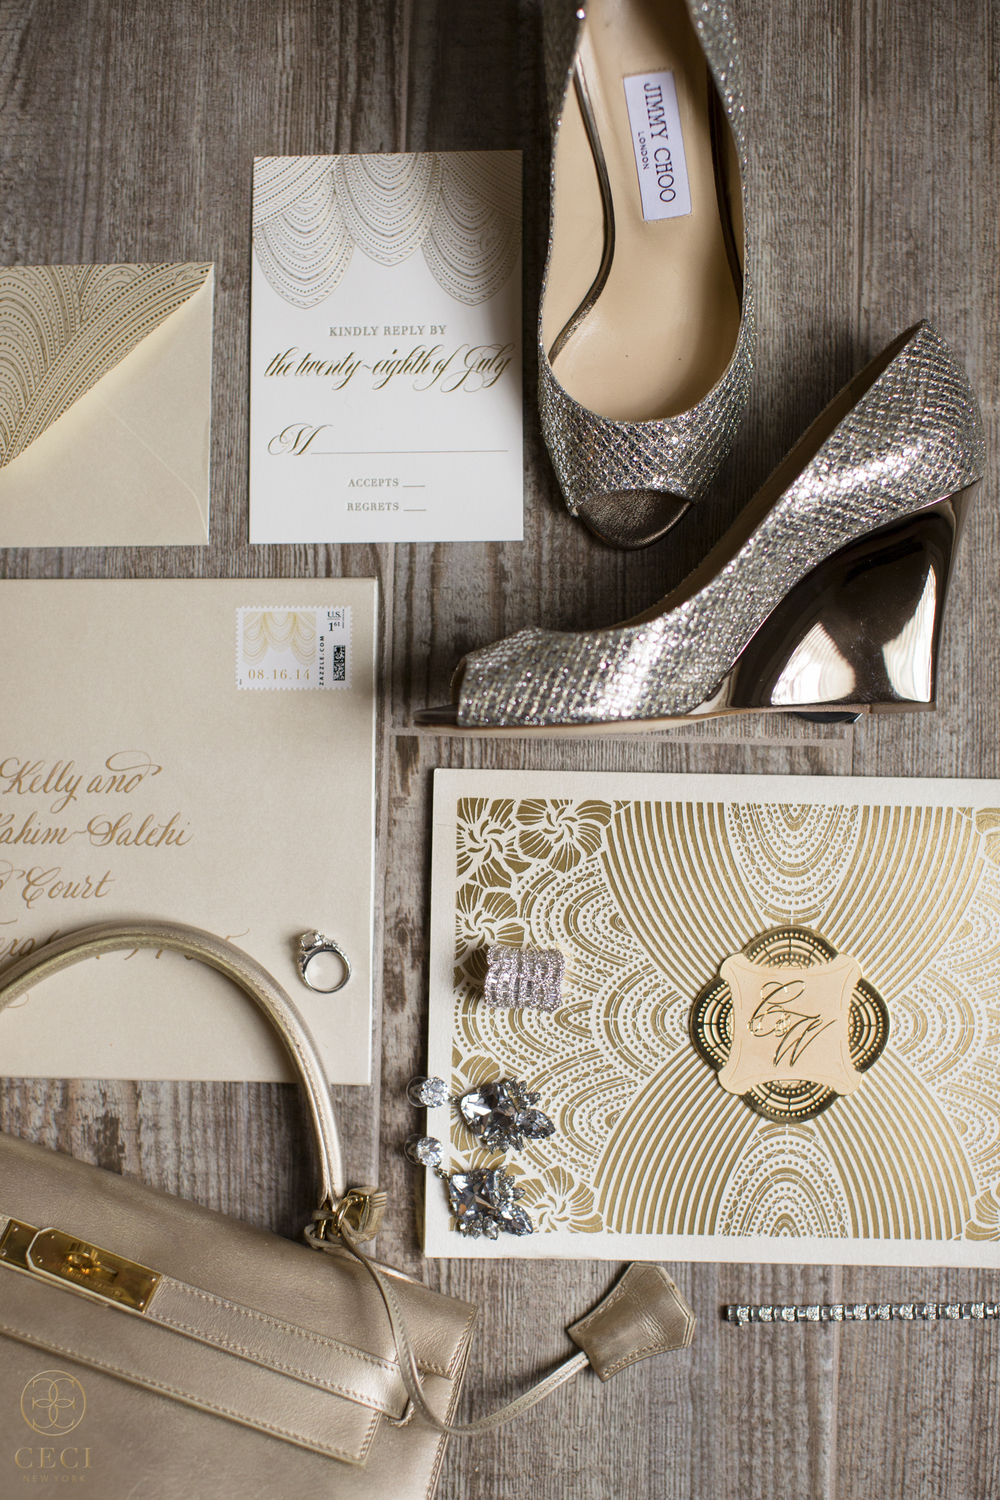 gold_deco_luxe_lavish_wedding_couture_luxury_invitation_design_lasercut_foil_glam_gilded_modern_sophisticated_midland_texas_invitations_suite-10.jpg